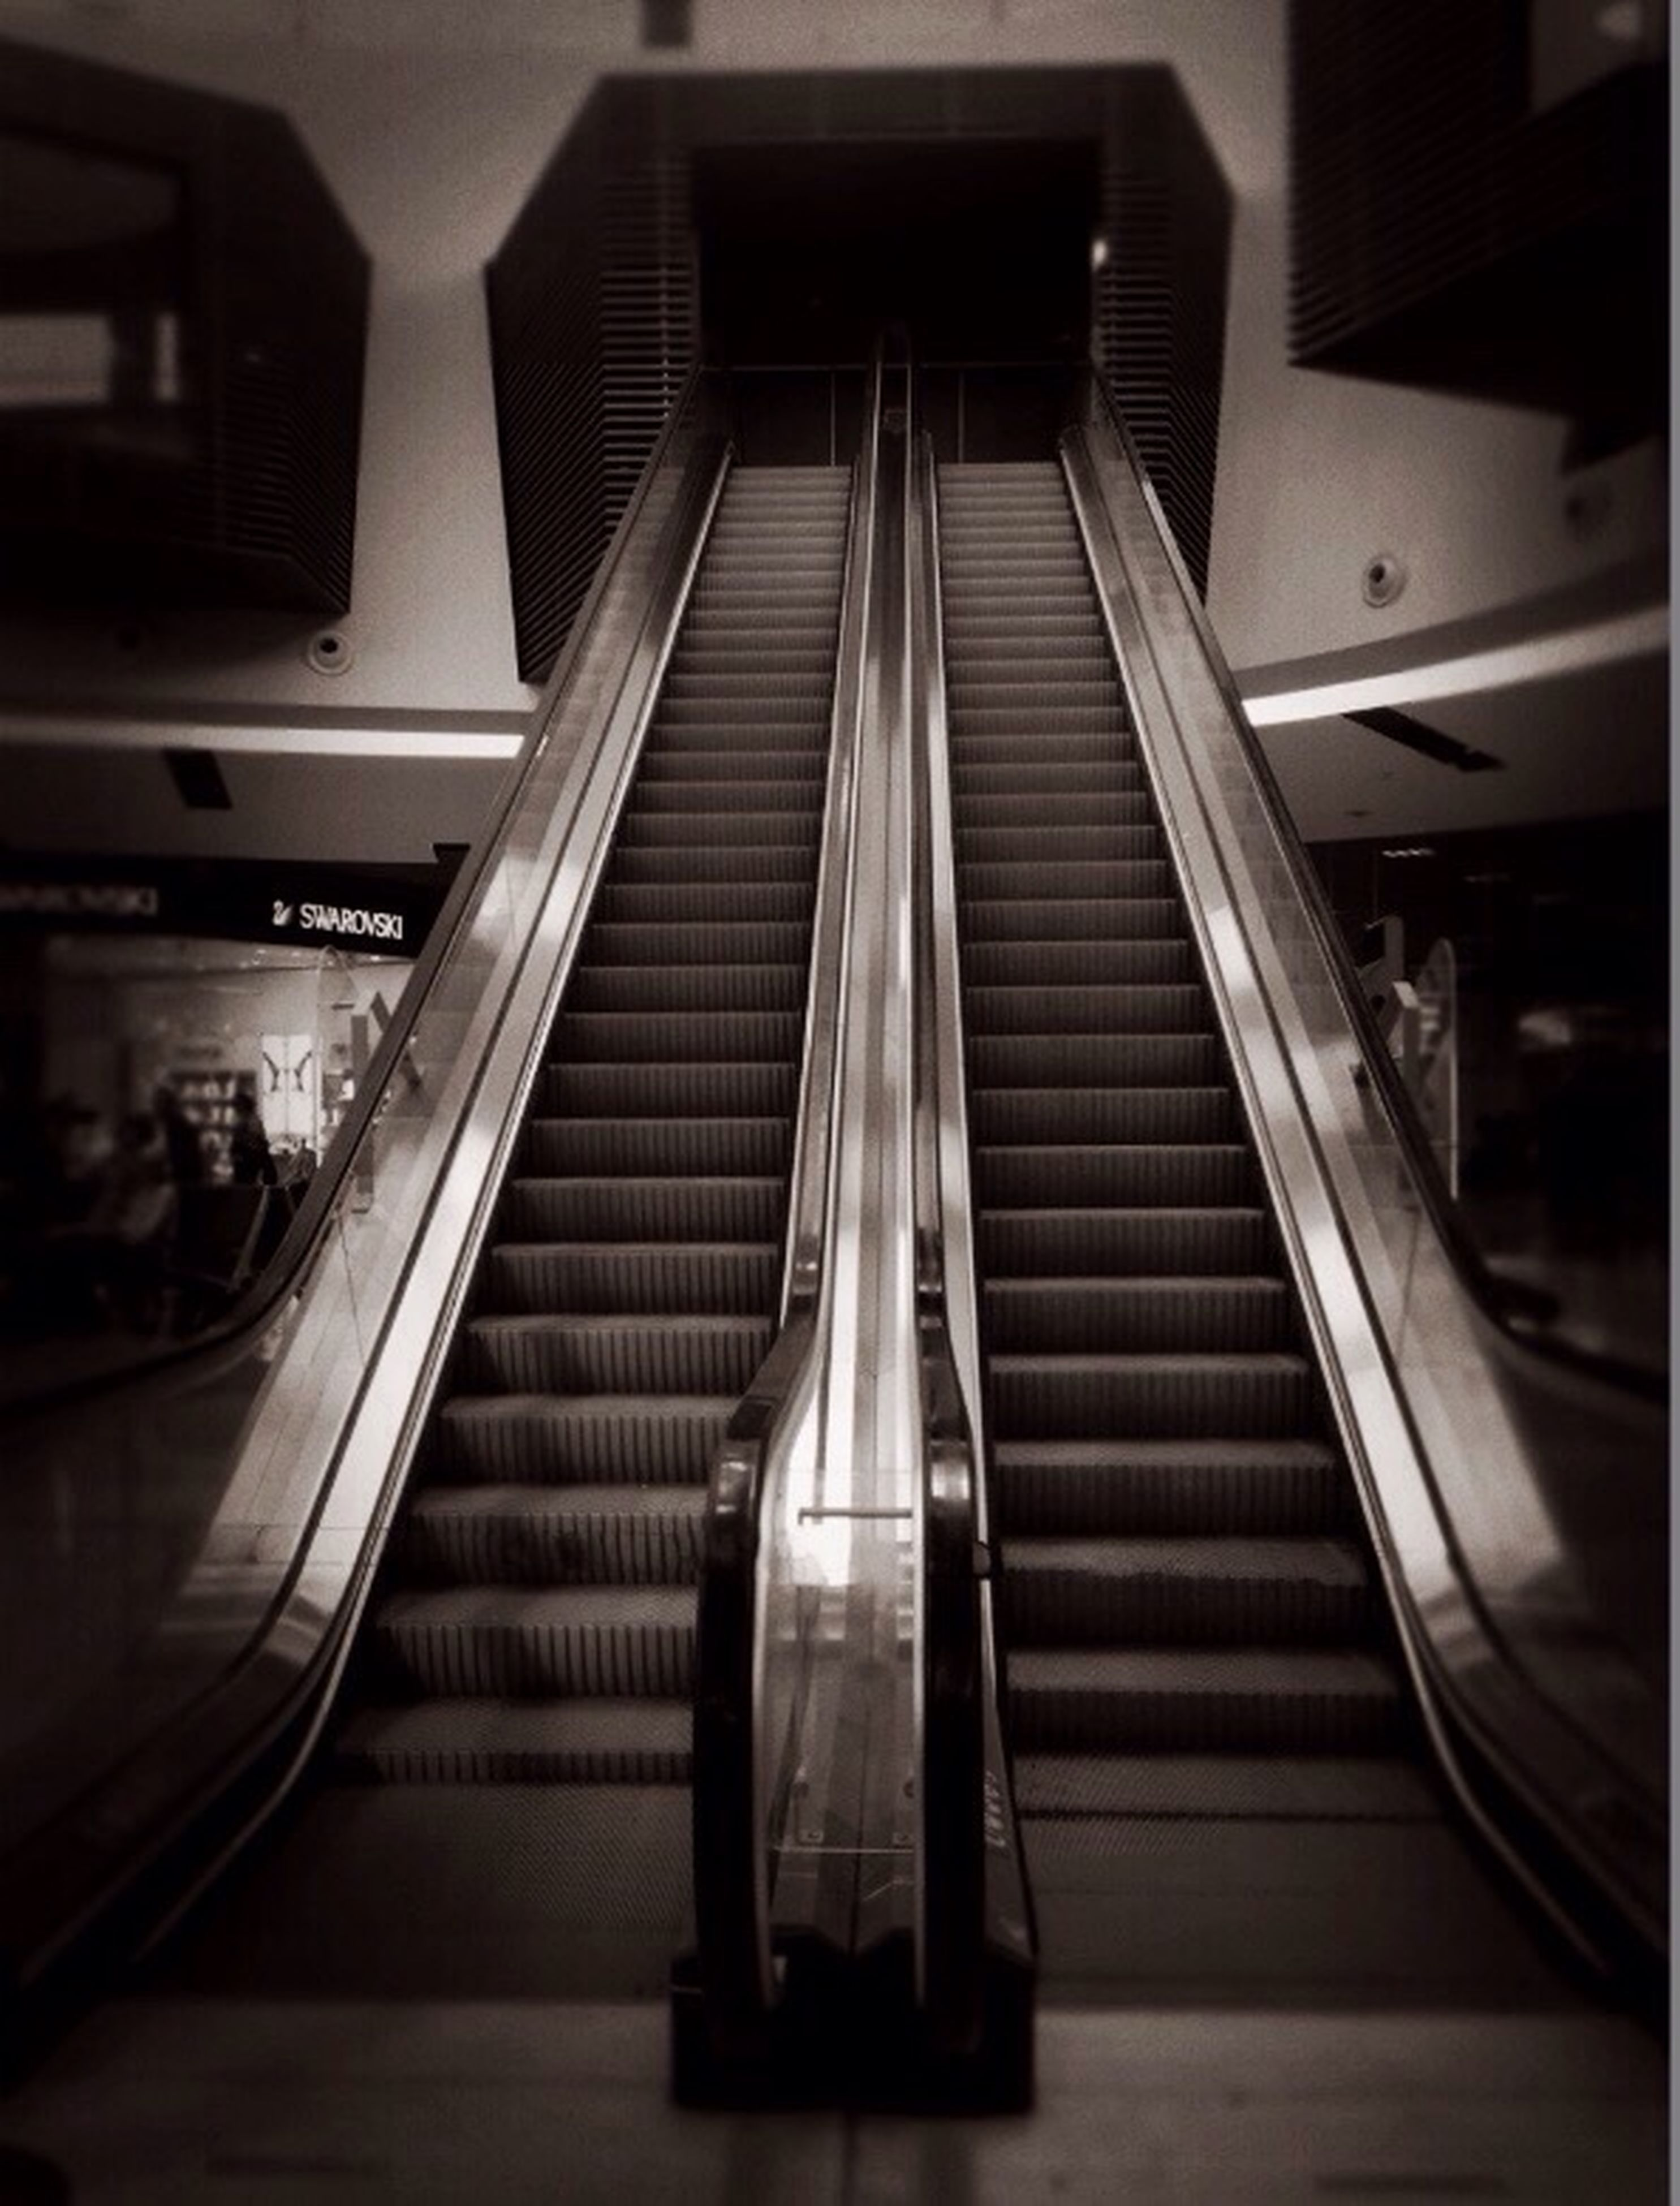 indoors, steps, steps and staircases, staircase, railing, escalator, architecture, built structure, low angle view, modern, technology, building, no people, illuminated, diminishing perspective, stairs, convenience, reflection, day, the way forward